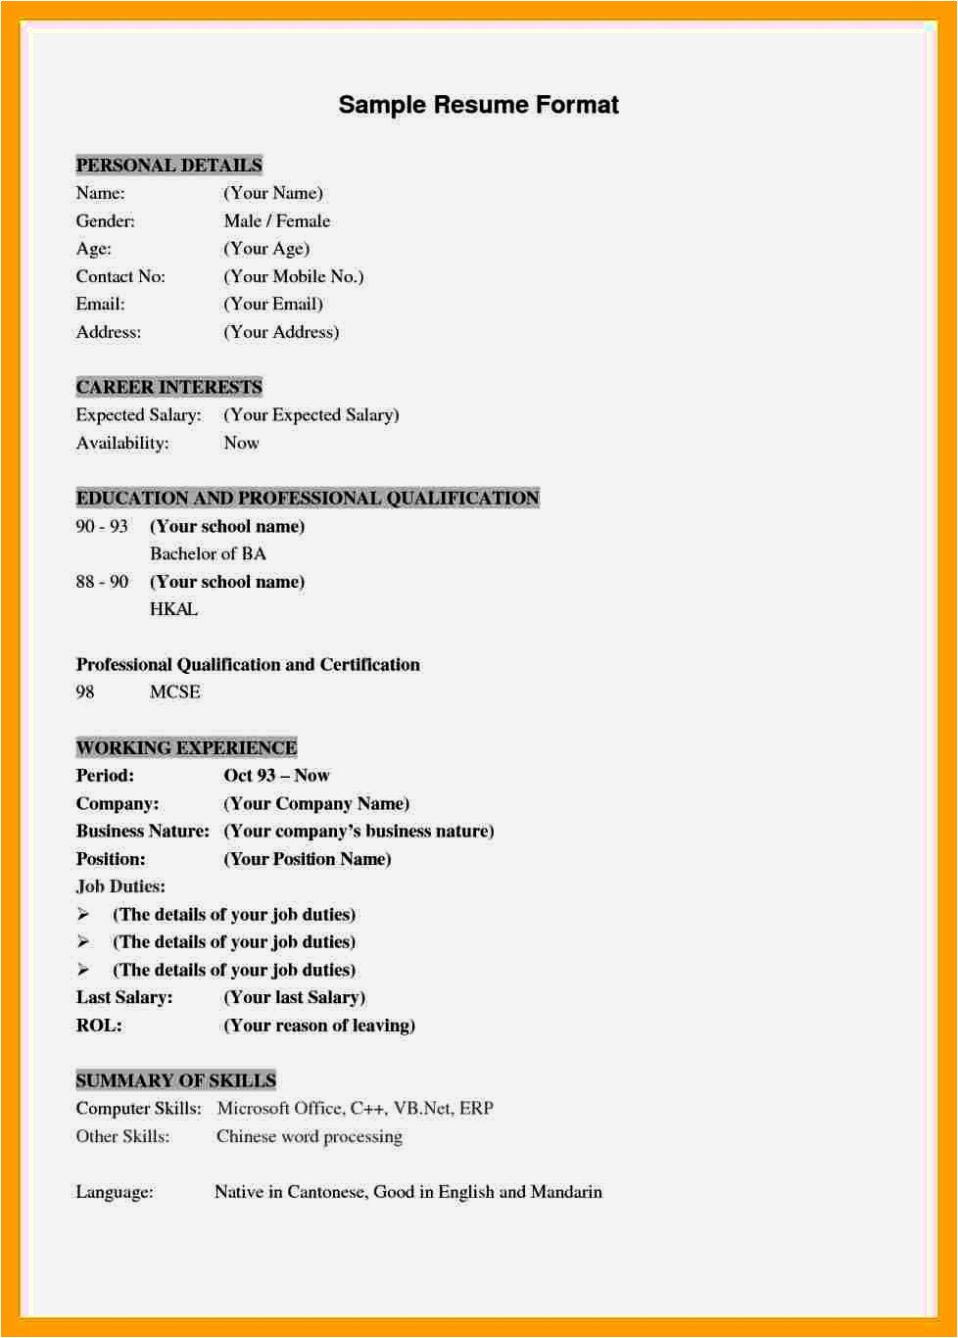 Resume Expected Salary Sample Expected Salary In Resume Resume Template Cover Letter